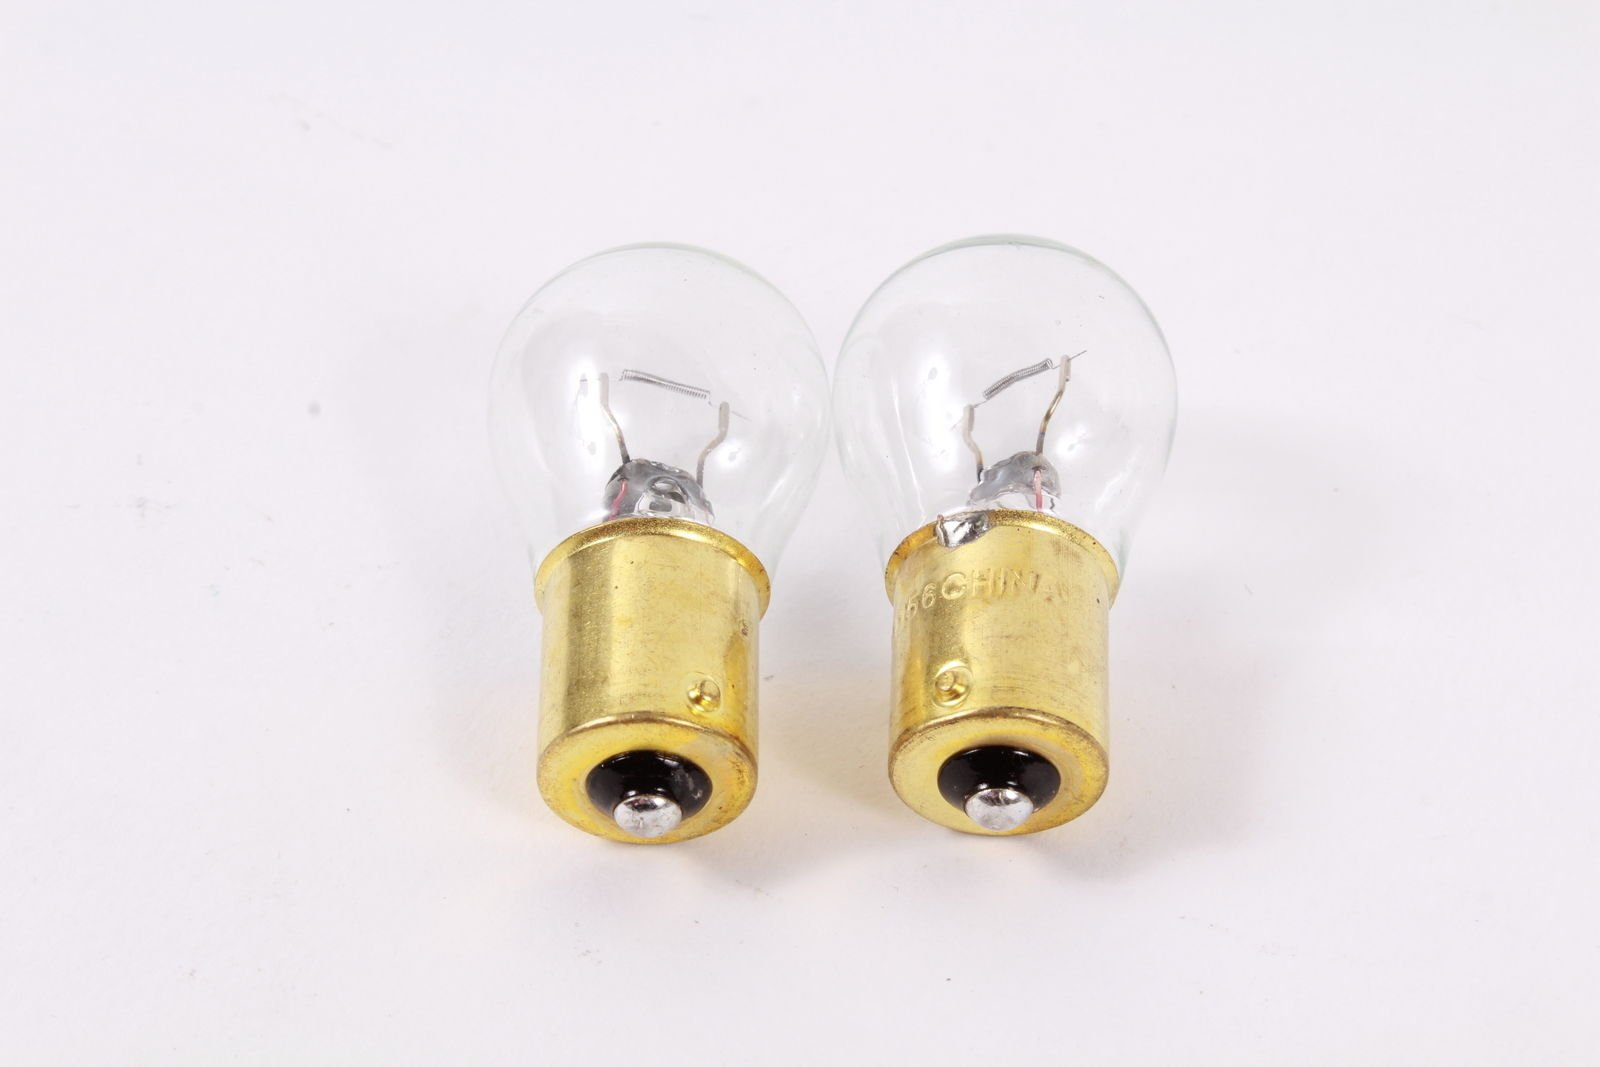 MTD 925-0963 2 Pack Genuine 12V Miniature Lamp + (Free E-book) A Complete Guidance To Take Care Of Your Lawn